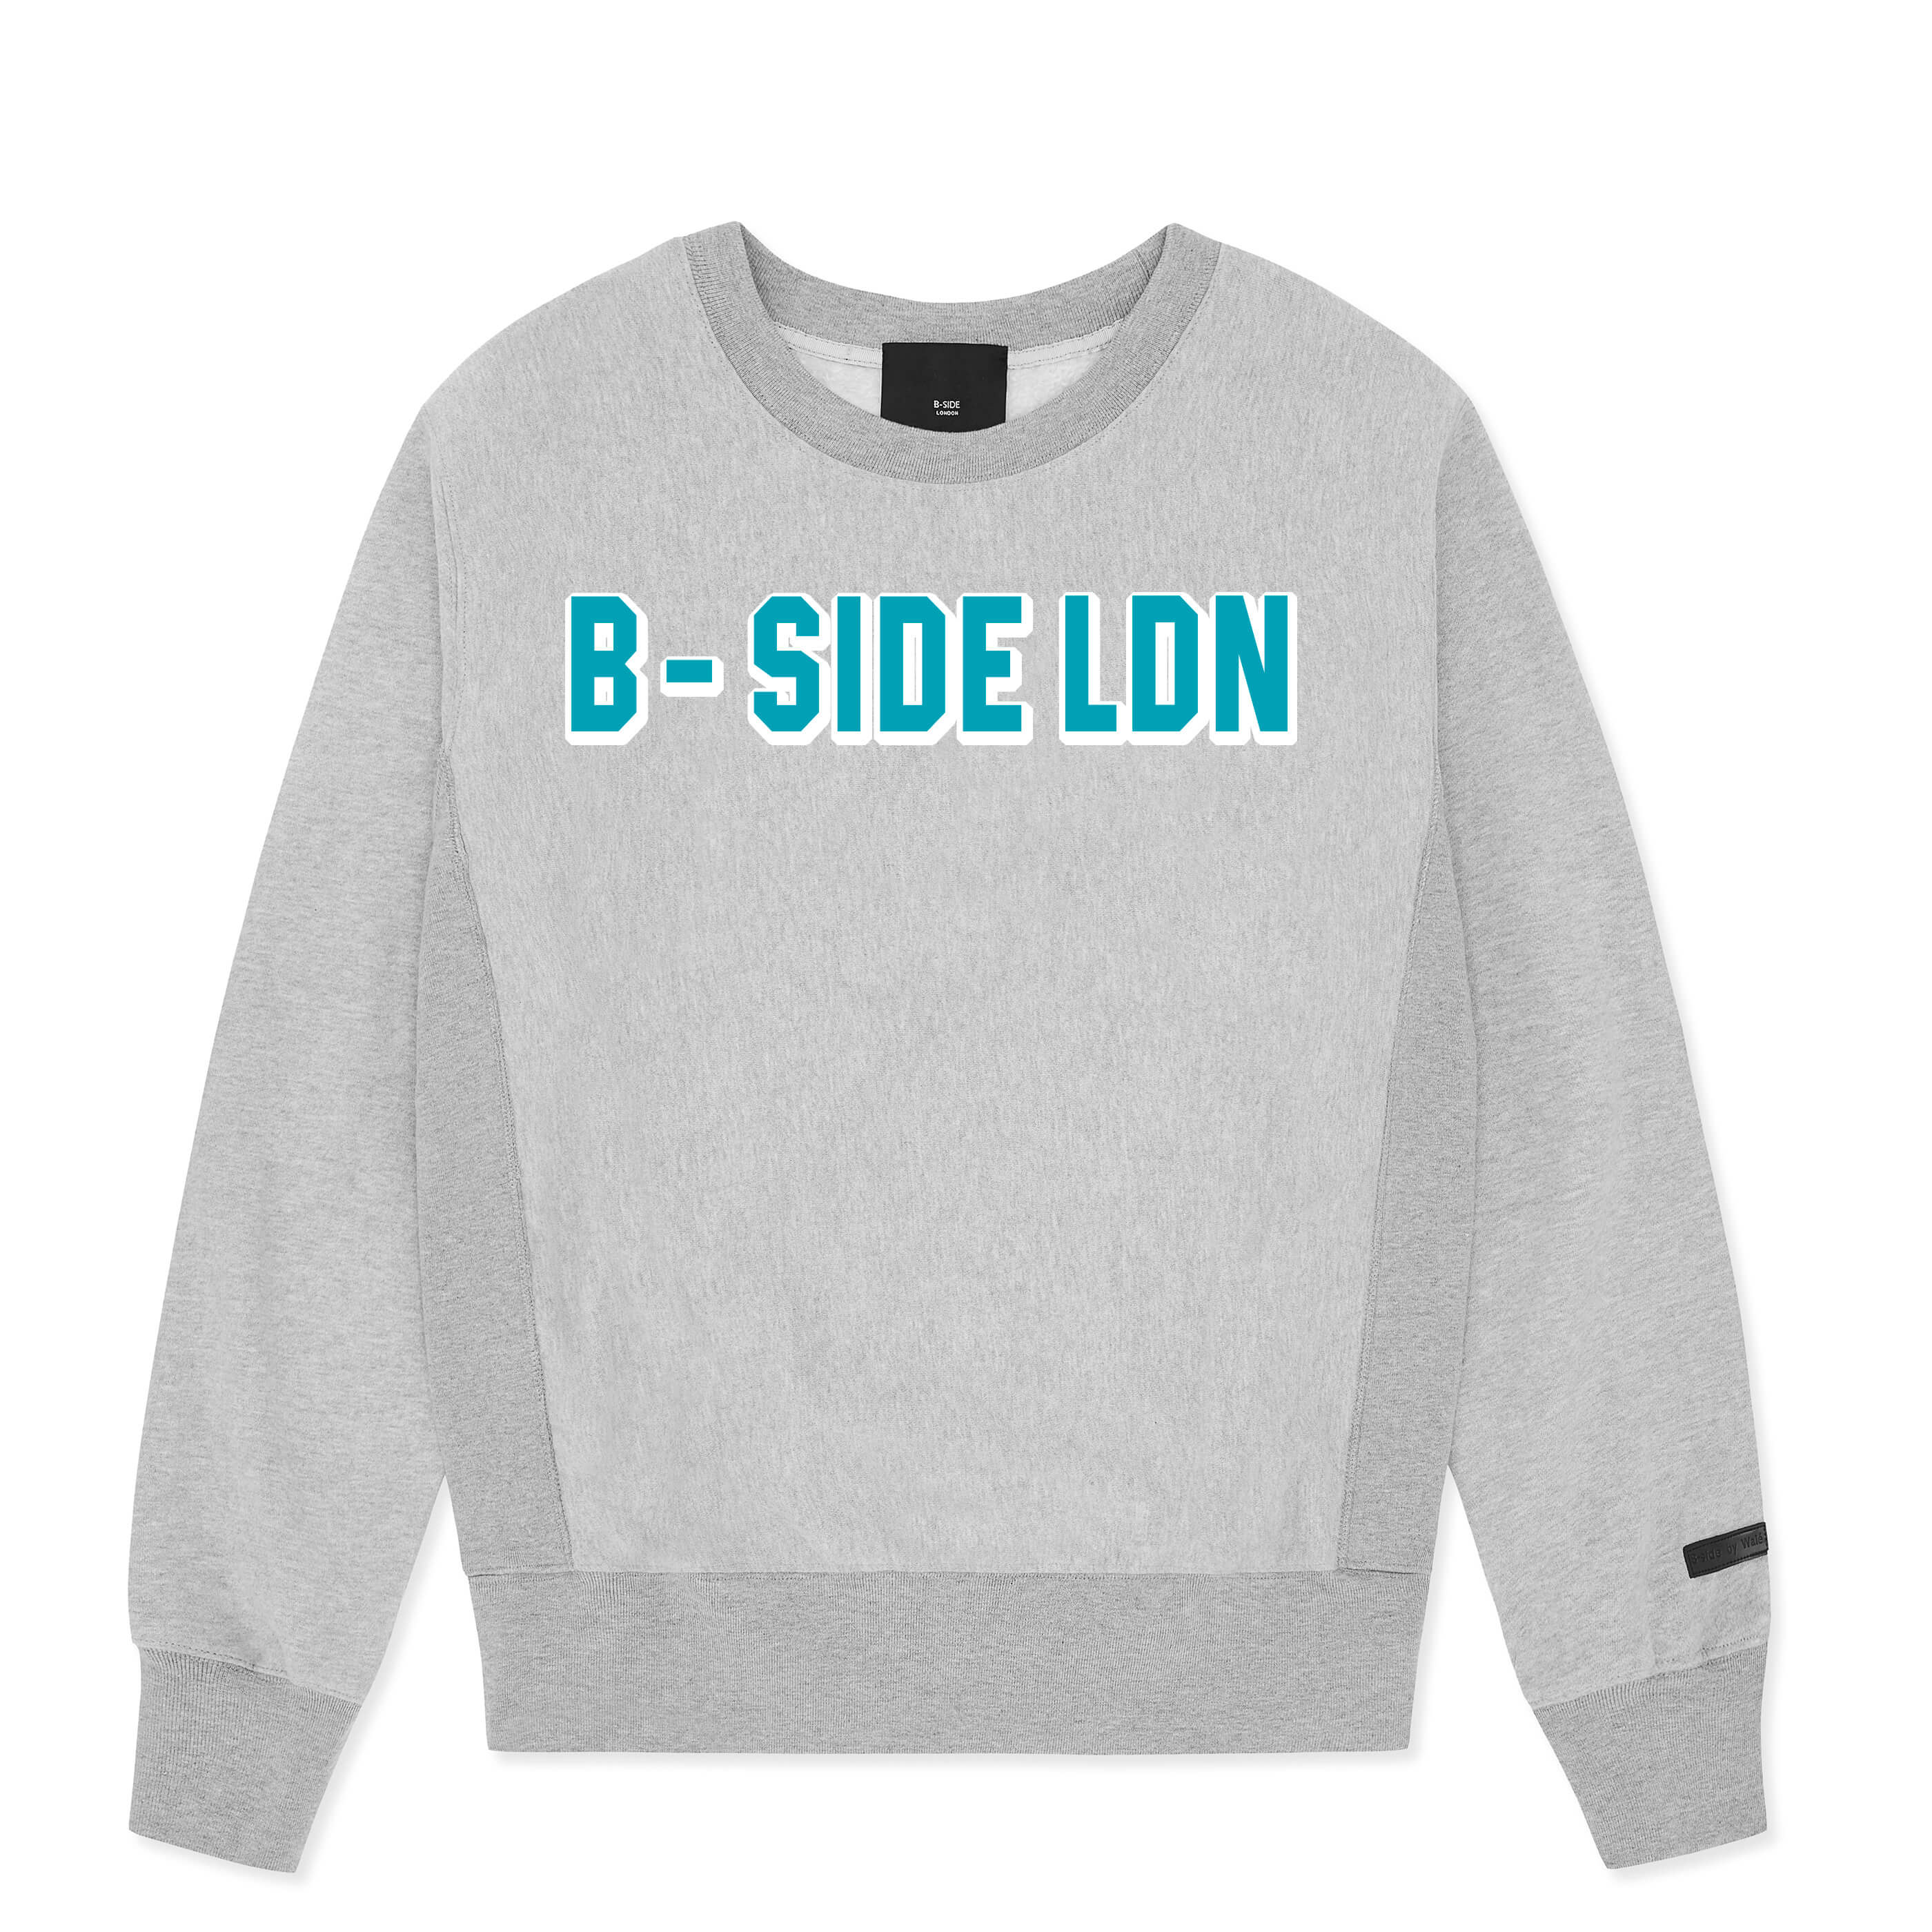 WOMEN'S GREY CREWNECK COMMUNITY HEAVY SWEAT | BLUE LOGO | B-sidebywale